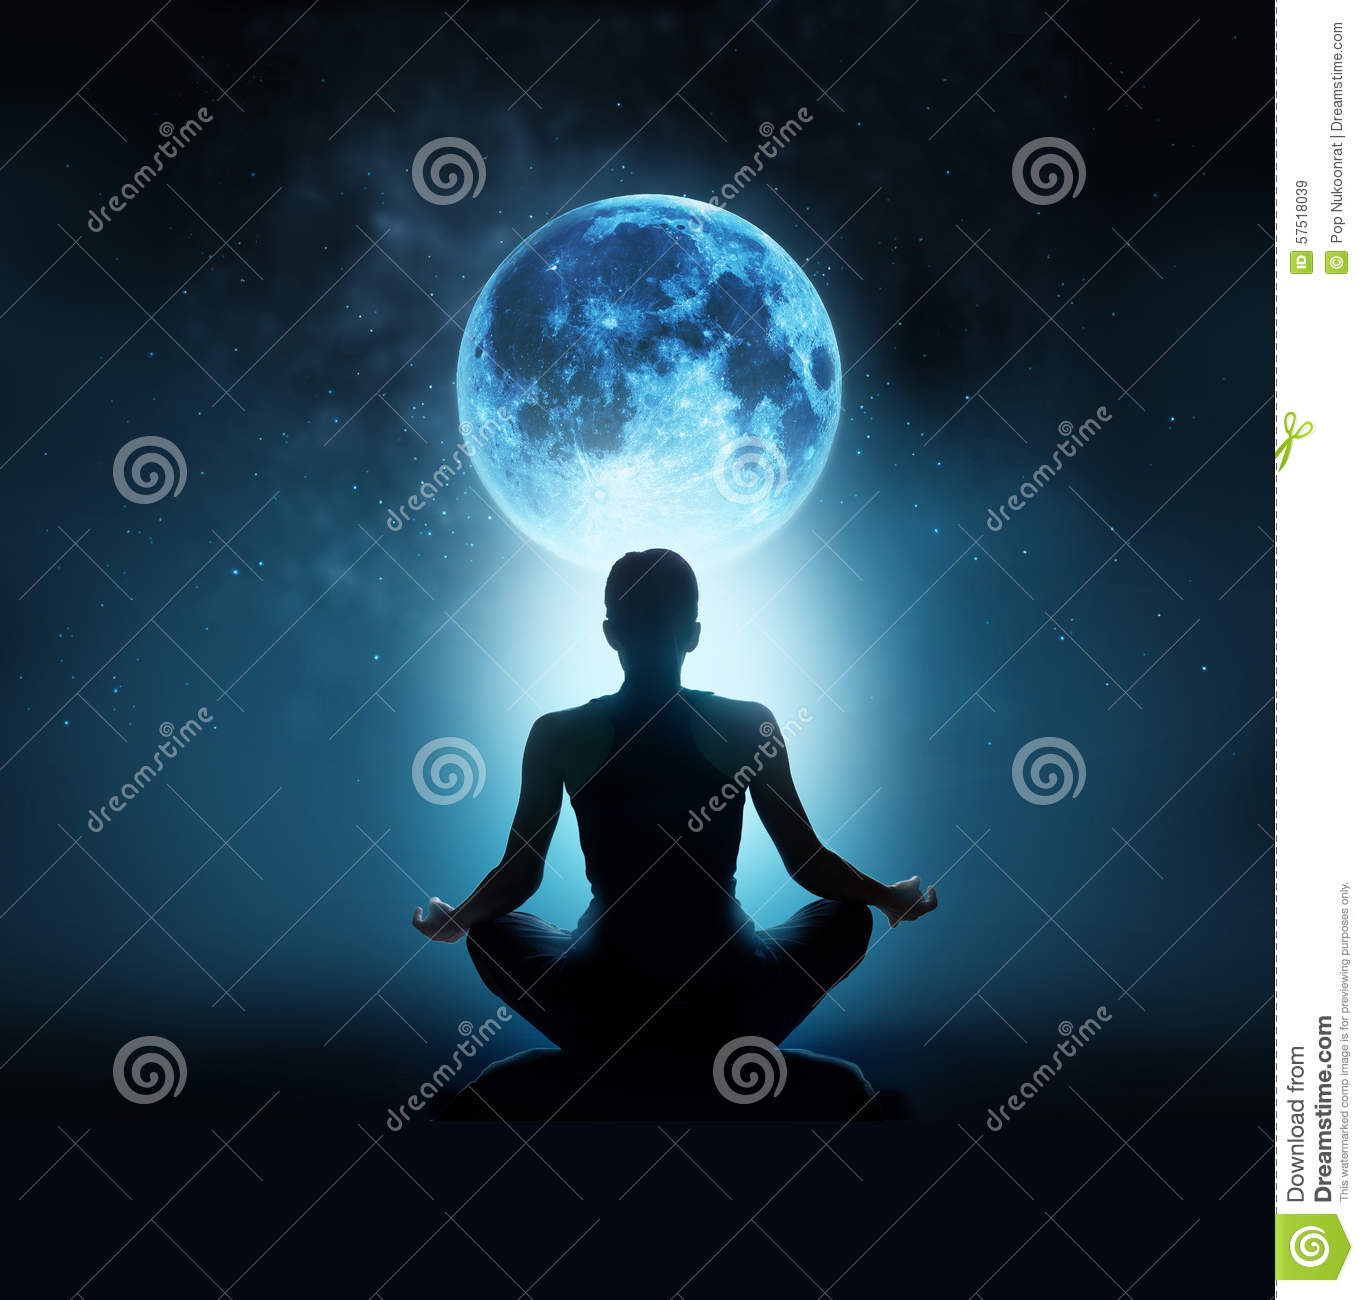 Abstract woman are meditating at blue full moon with star in dark night sky